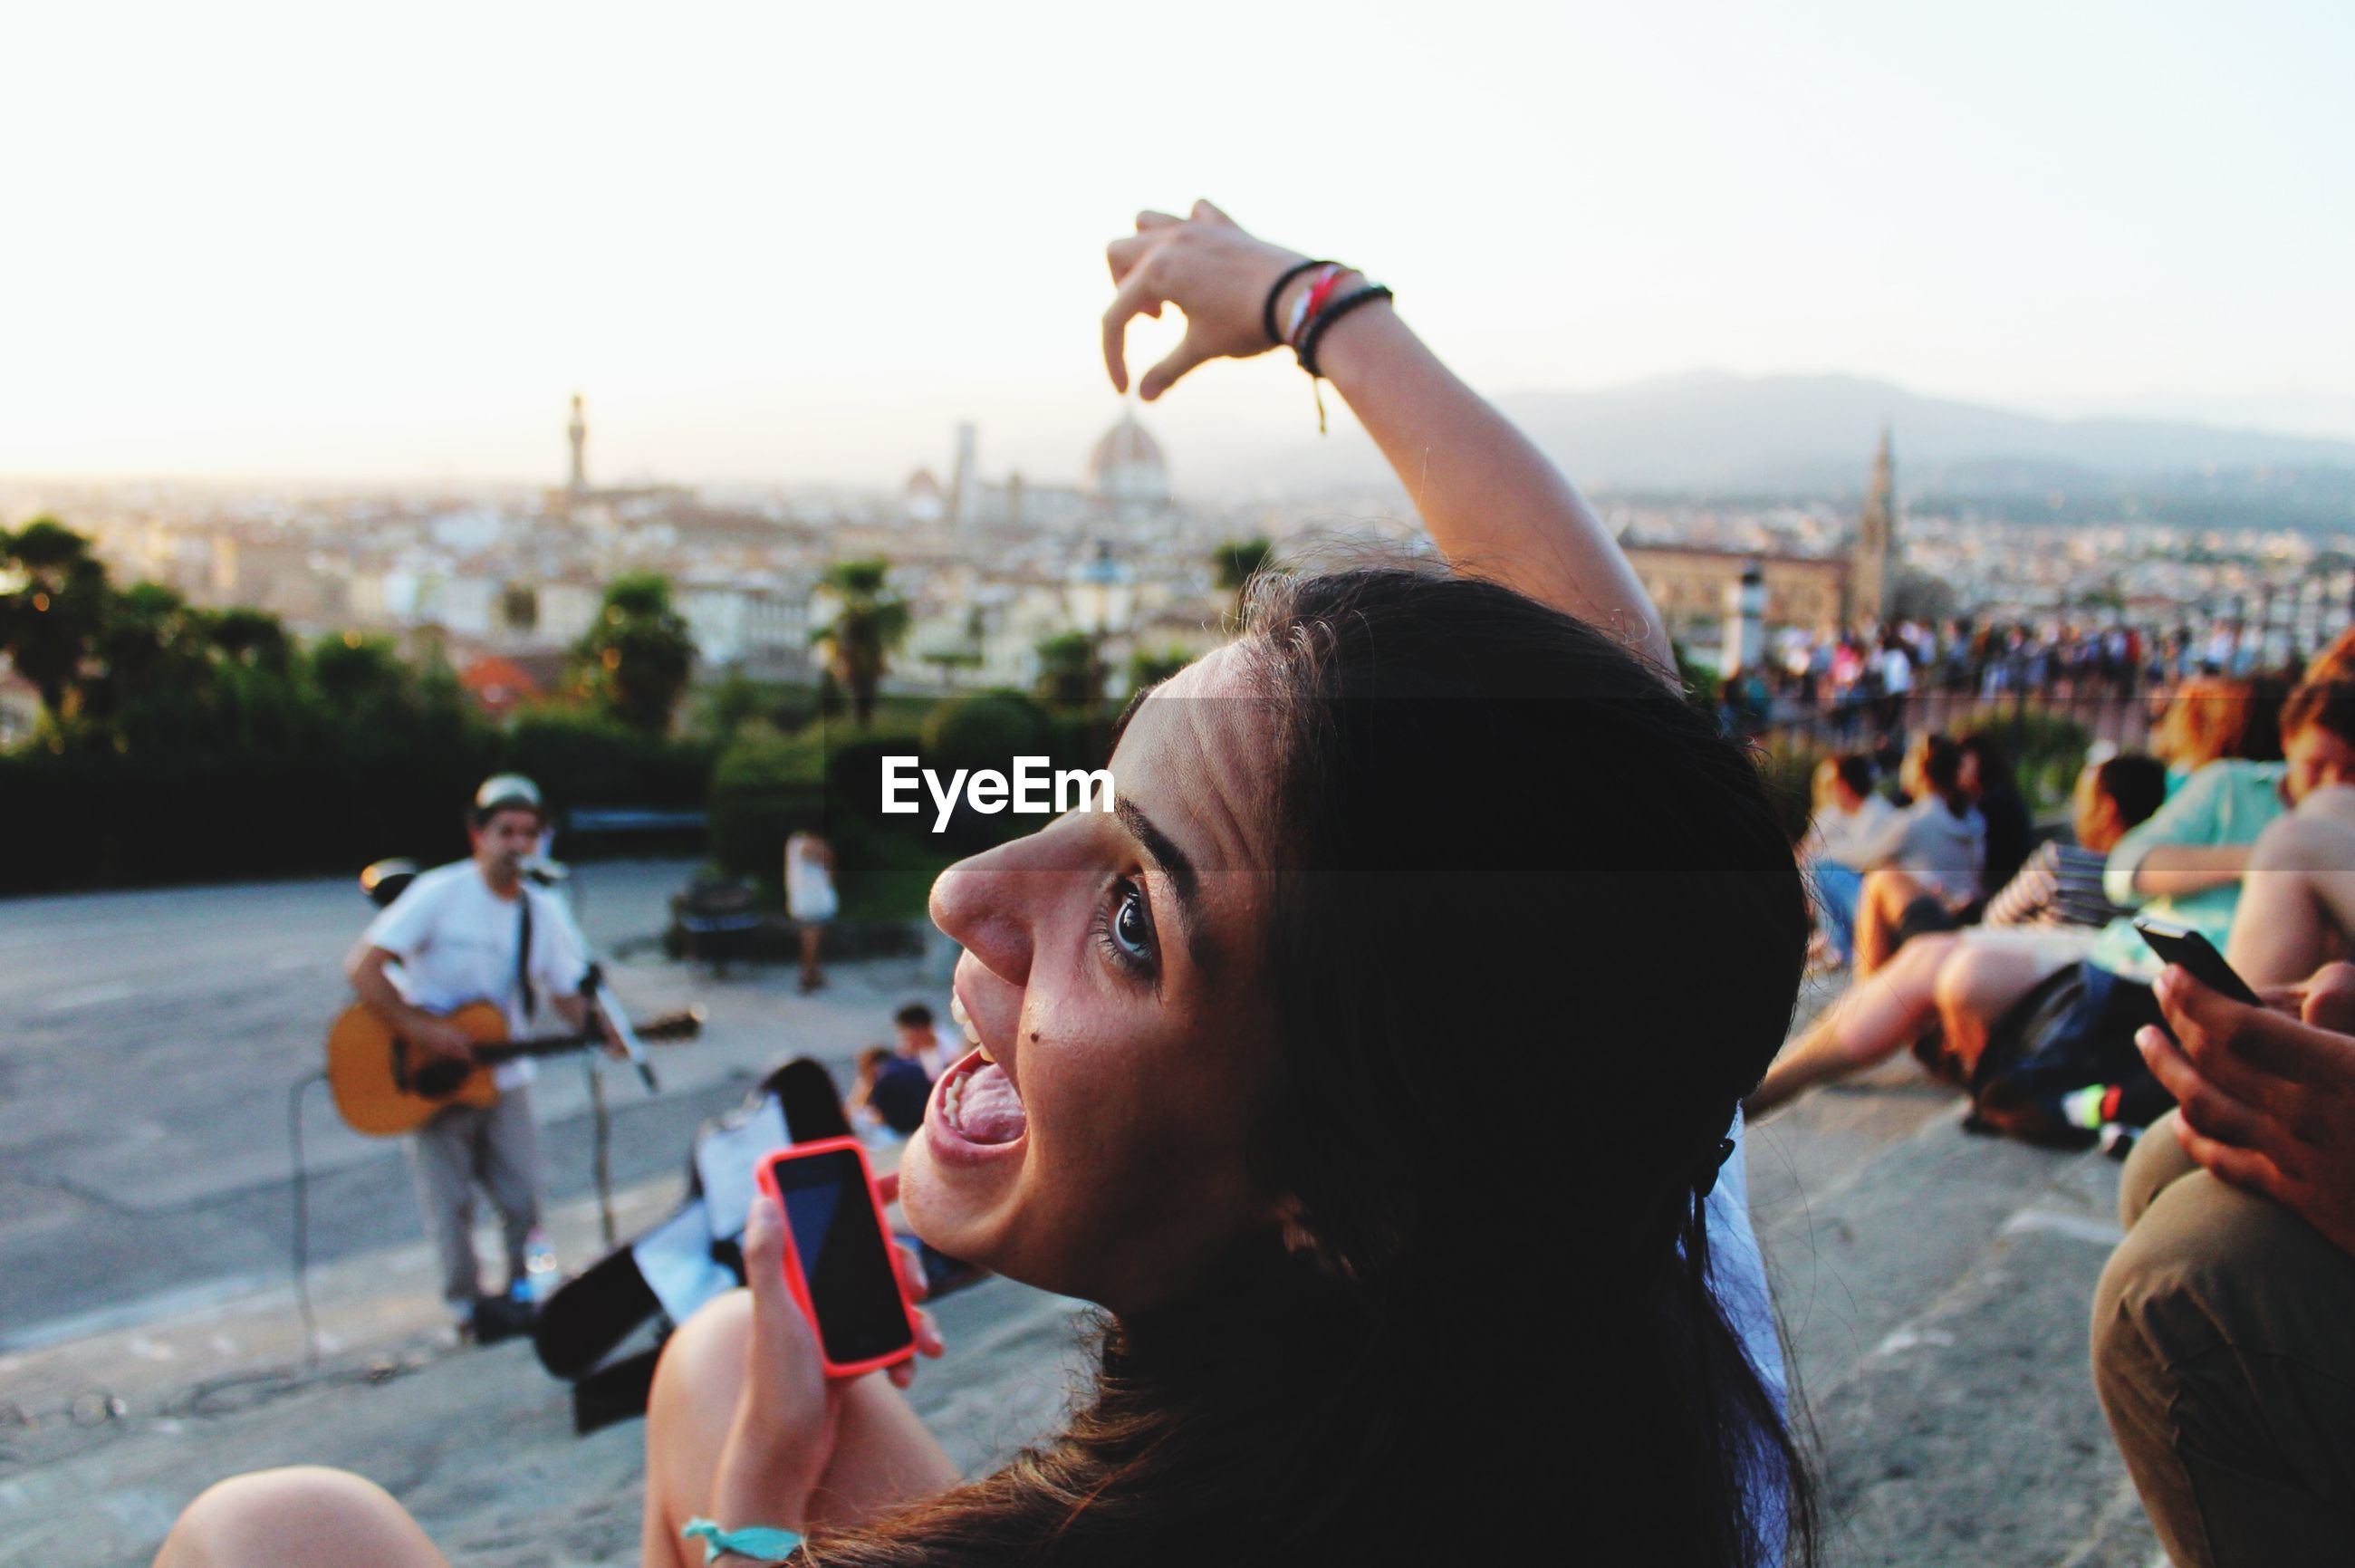 lifestyles, leisure activity, focus on foreground, large group of people, person, clear sky, city, enjoyment, holding, arts culture and entertainment, young adult, crowd, fun, men, cityscape, beach, outdoors, togetherness